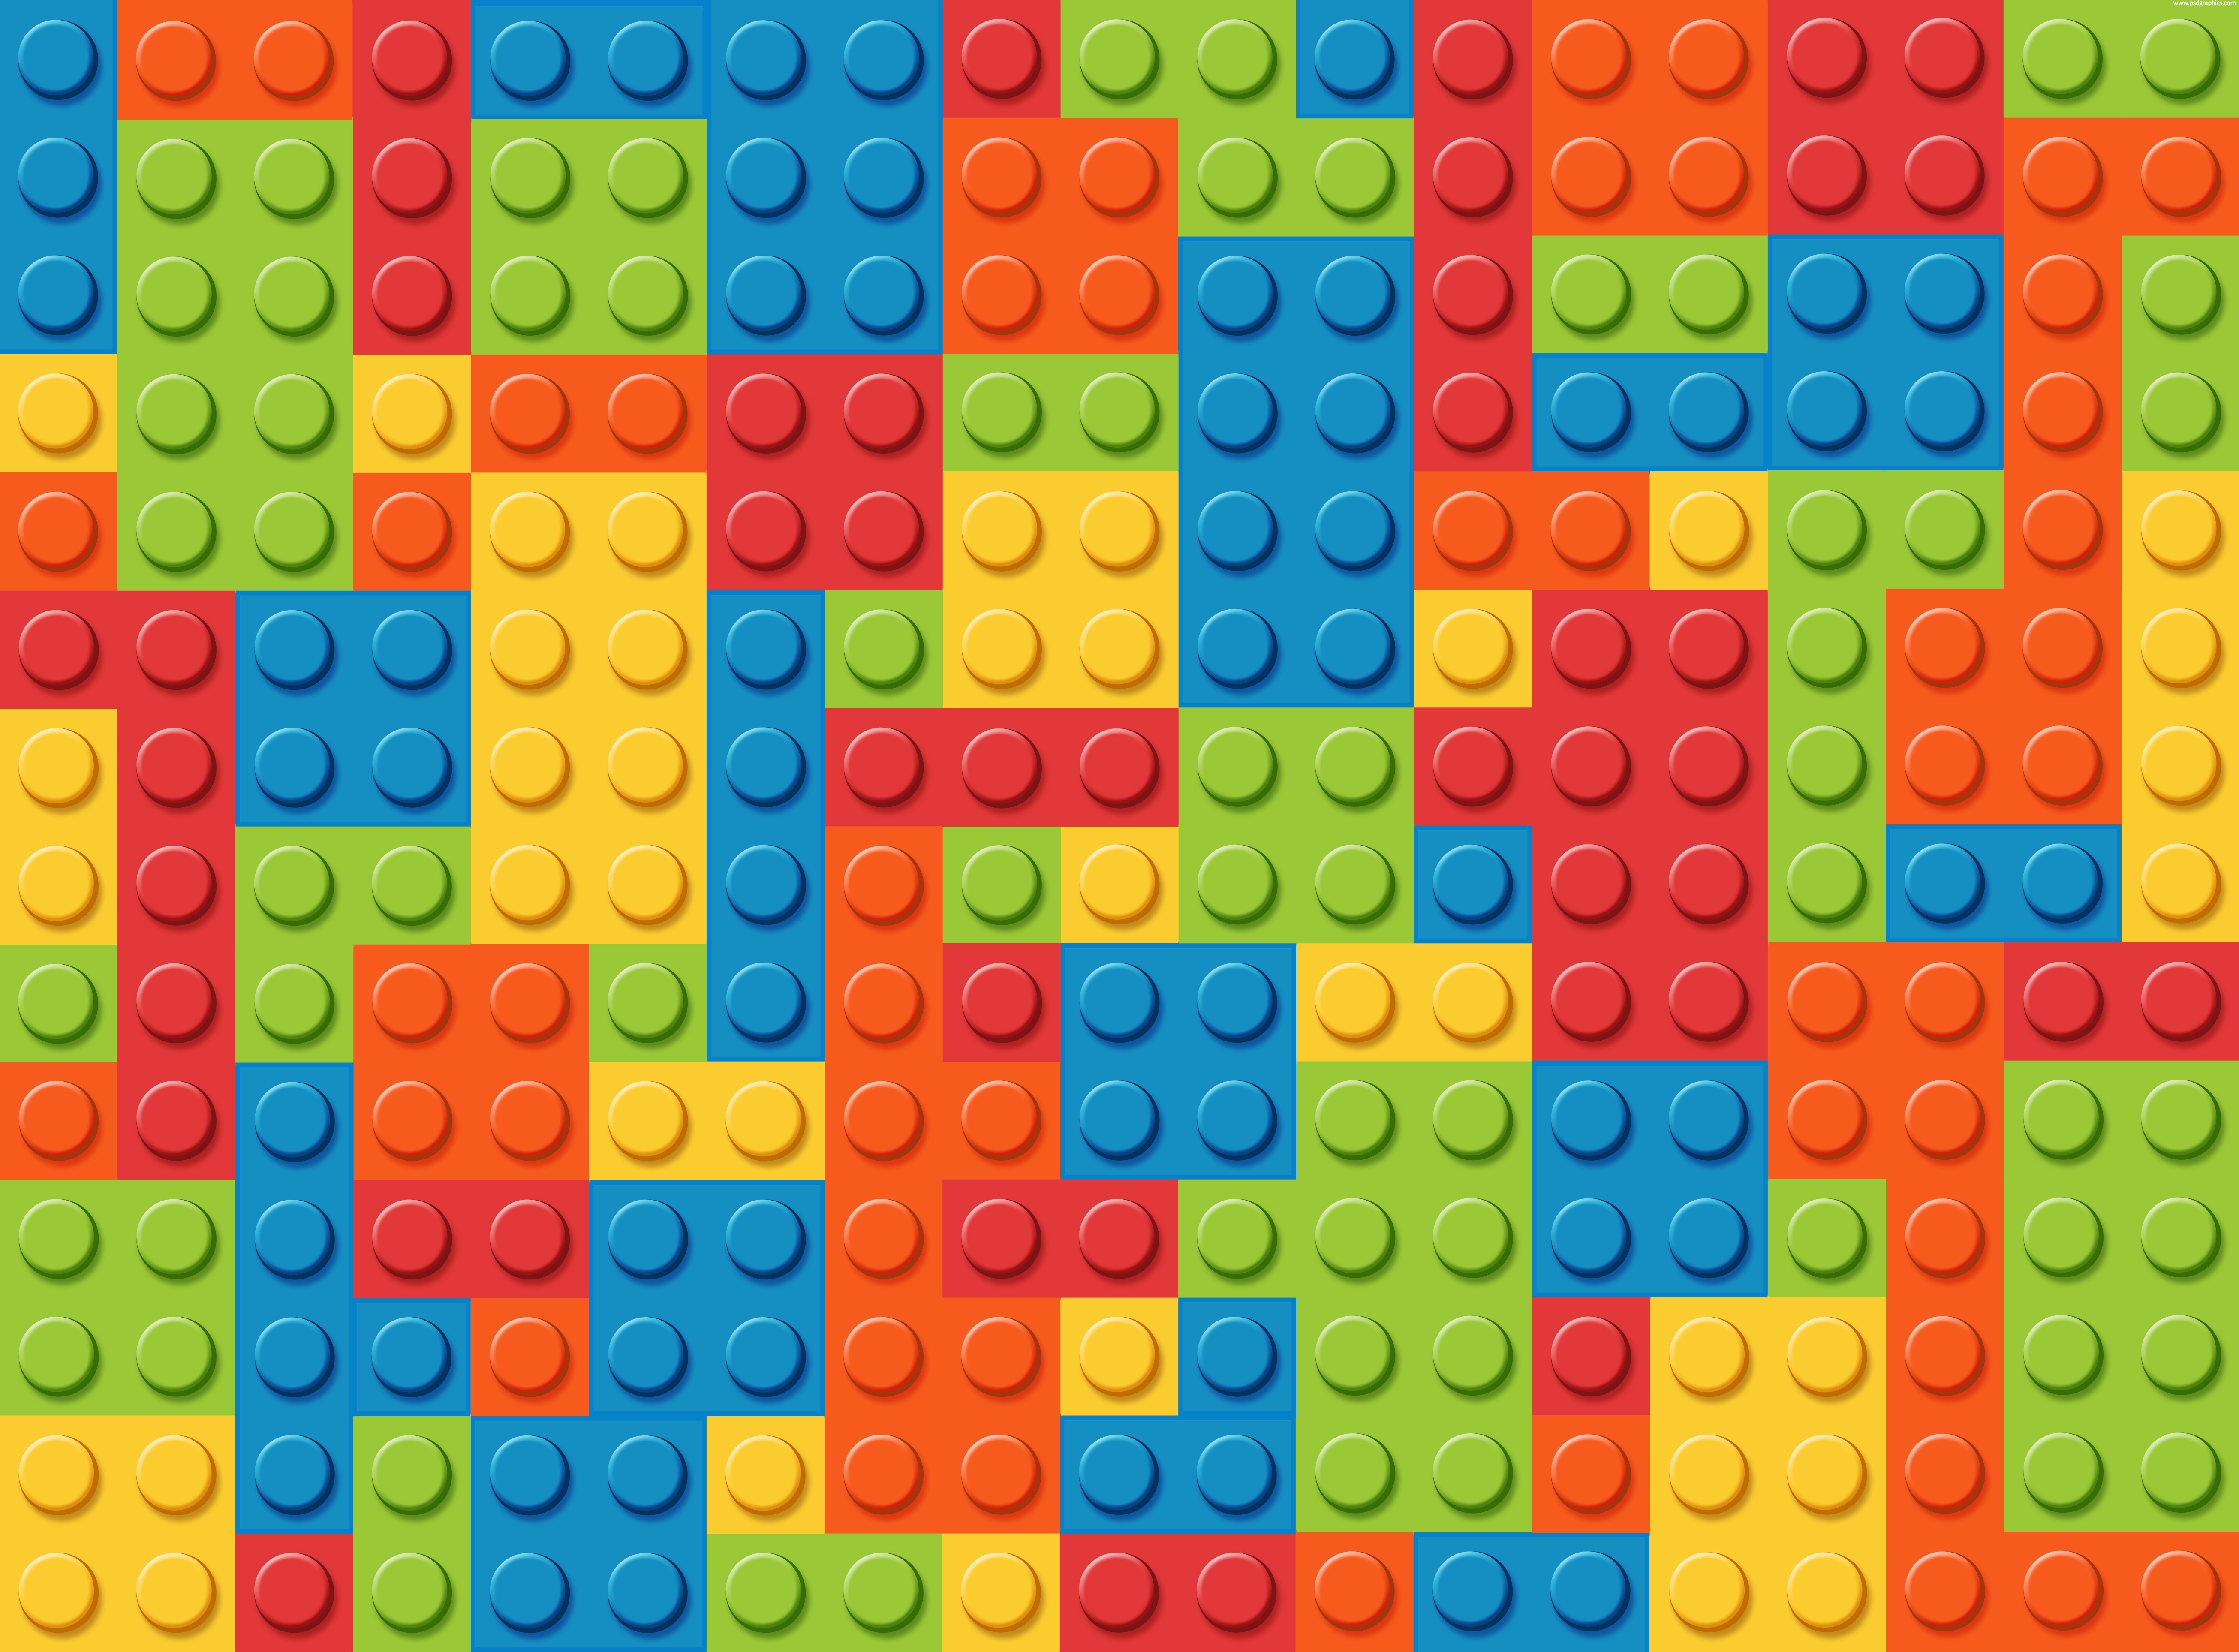 5 Images of Printable LEGO Patterns